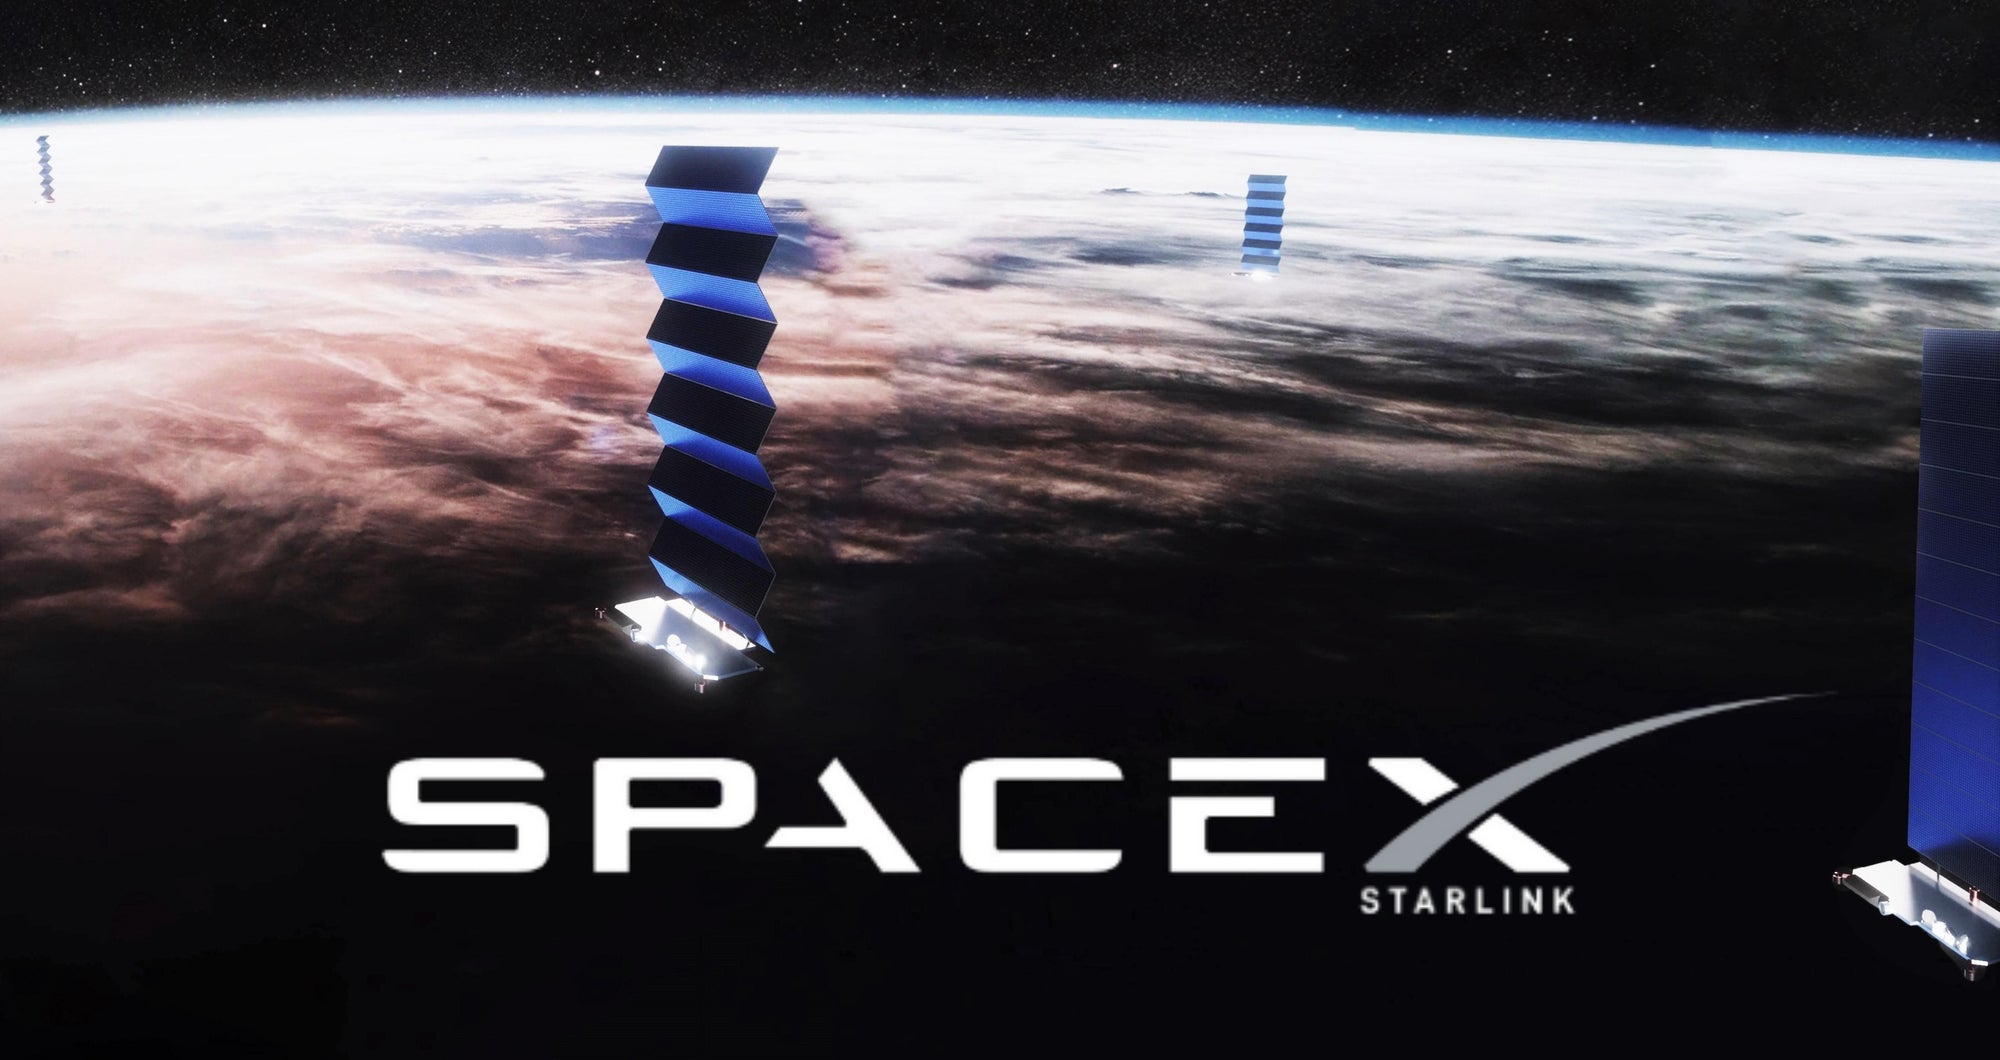 SpaceX receives FCC authorization to operate one million Starlink user terminals